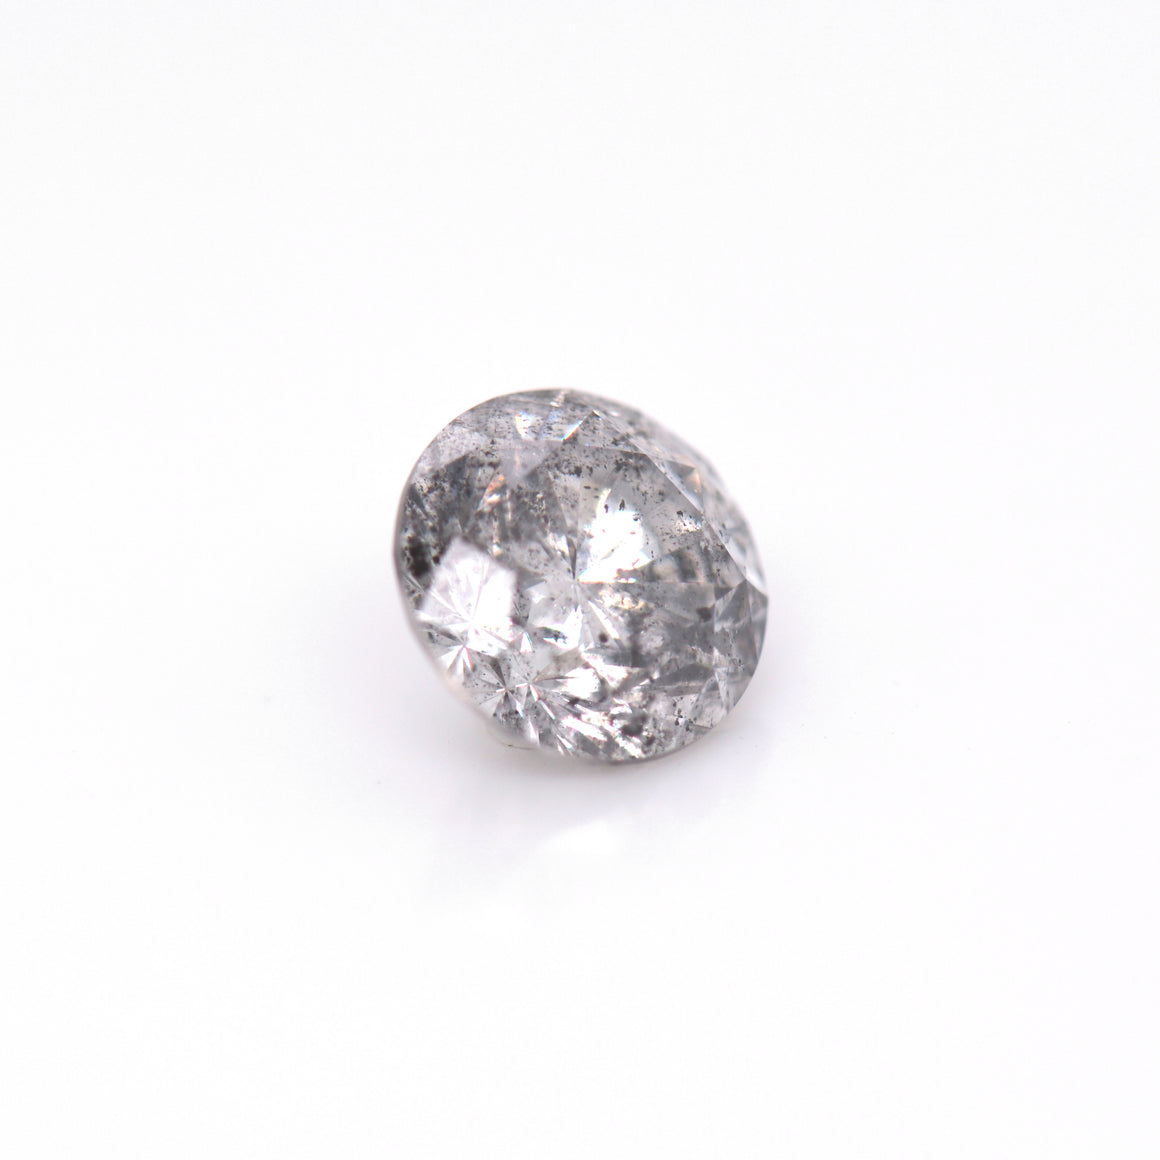 2.00 Carat Salt & Pepper Grey Diamond